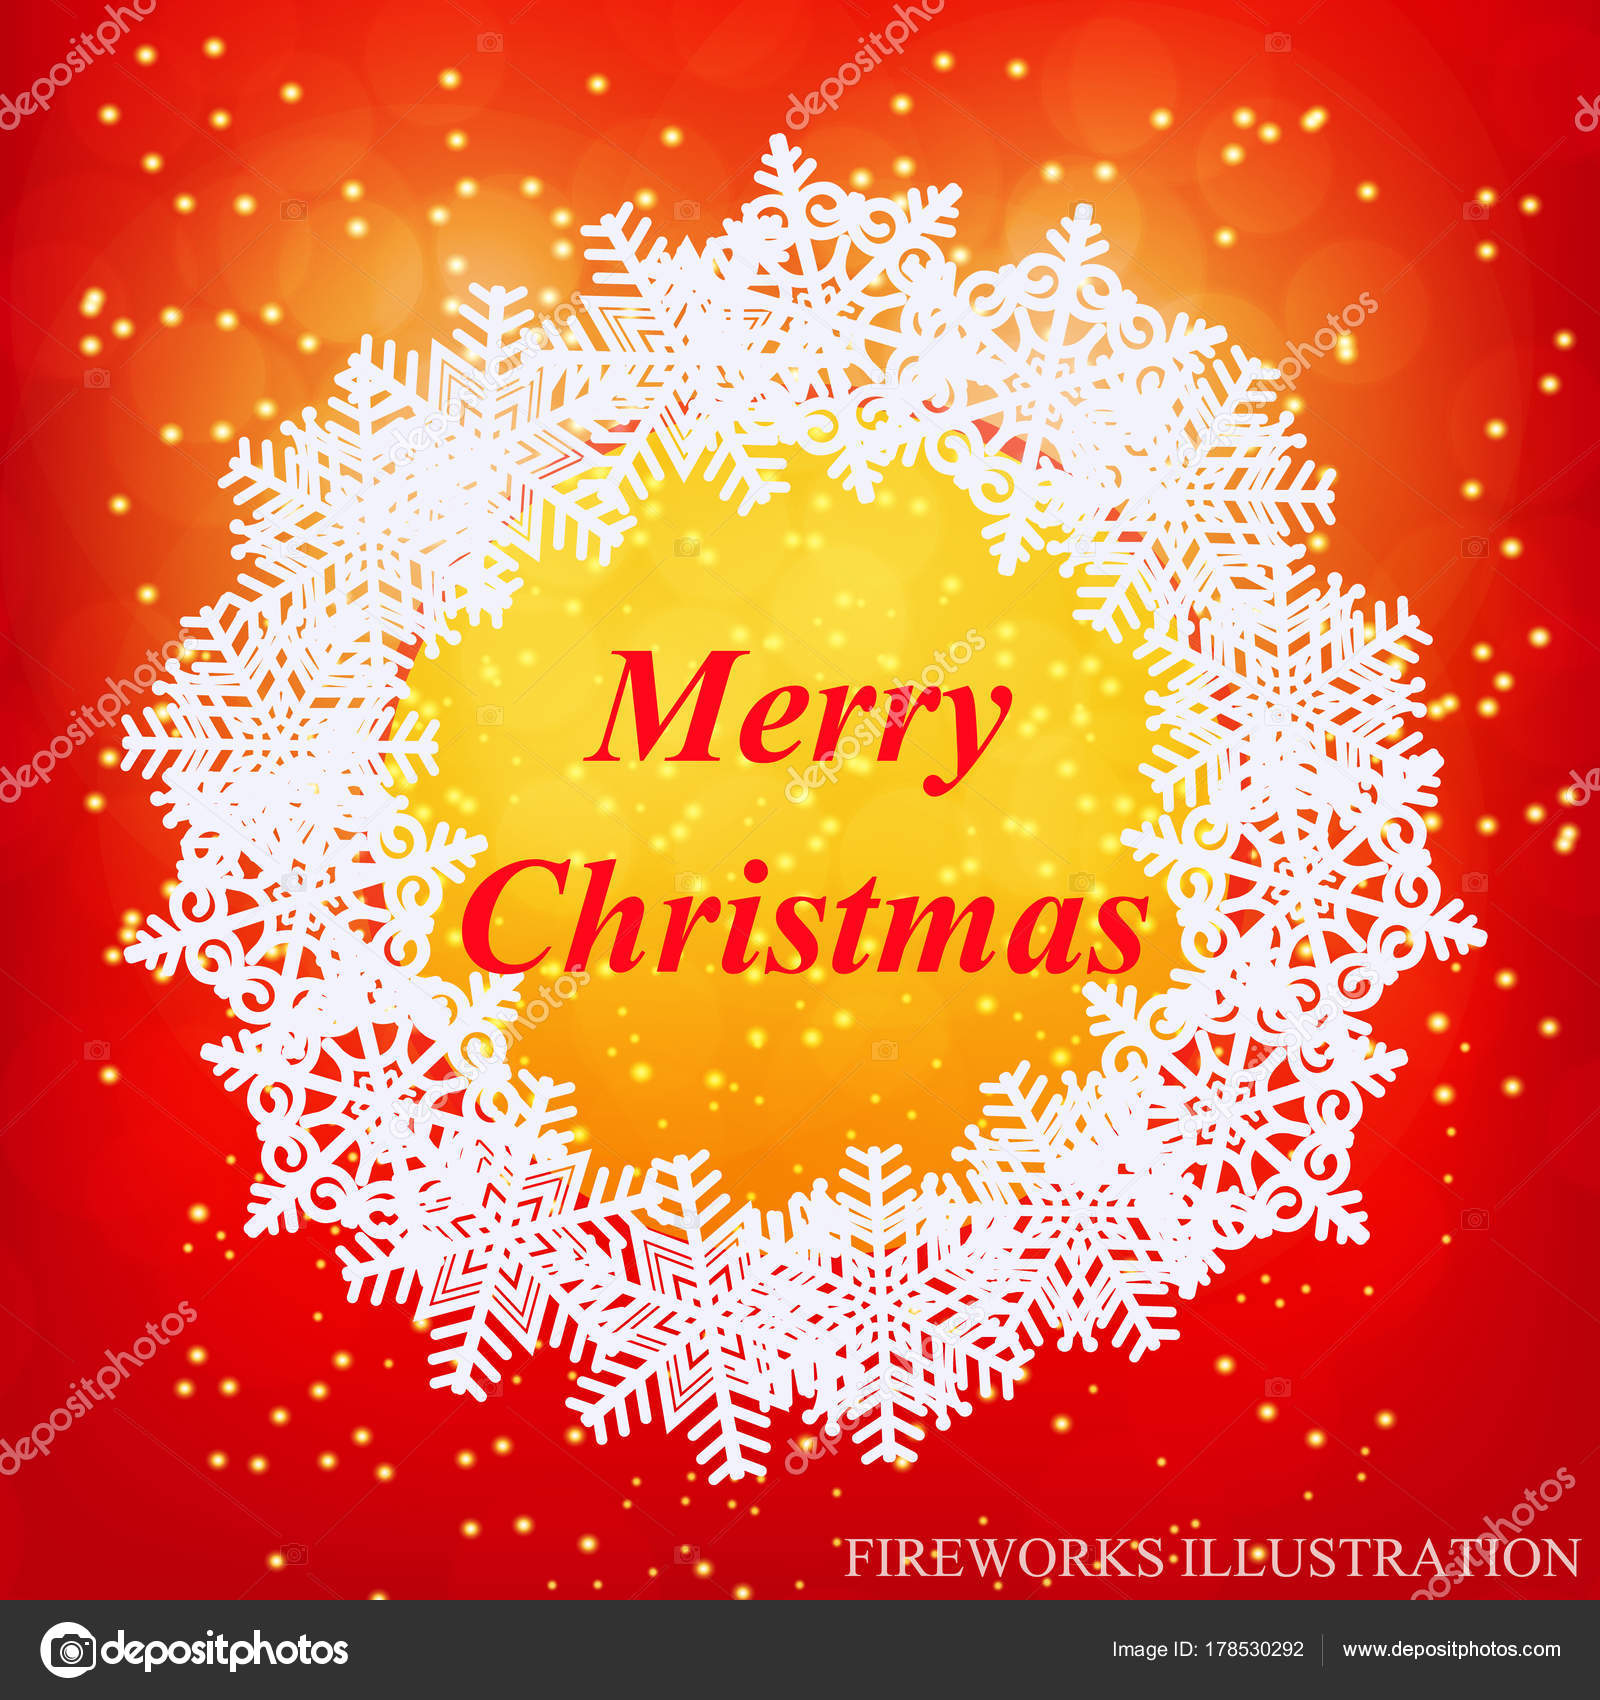 Merry Christmas Greeting Card New Year Template Brightly Colorful